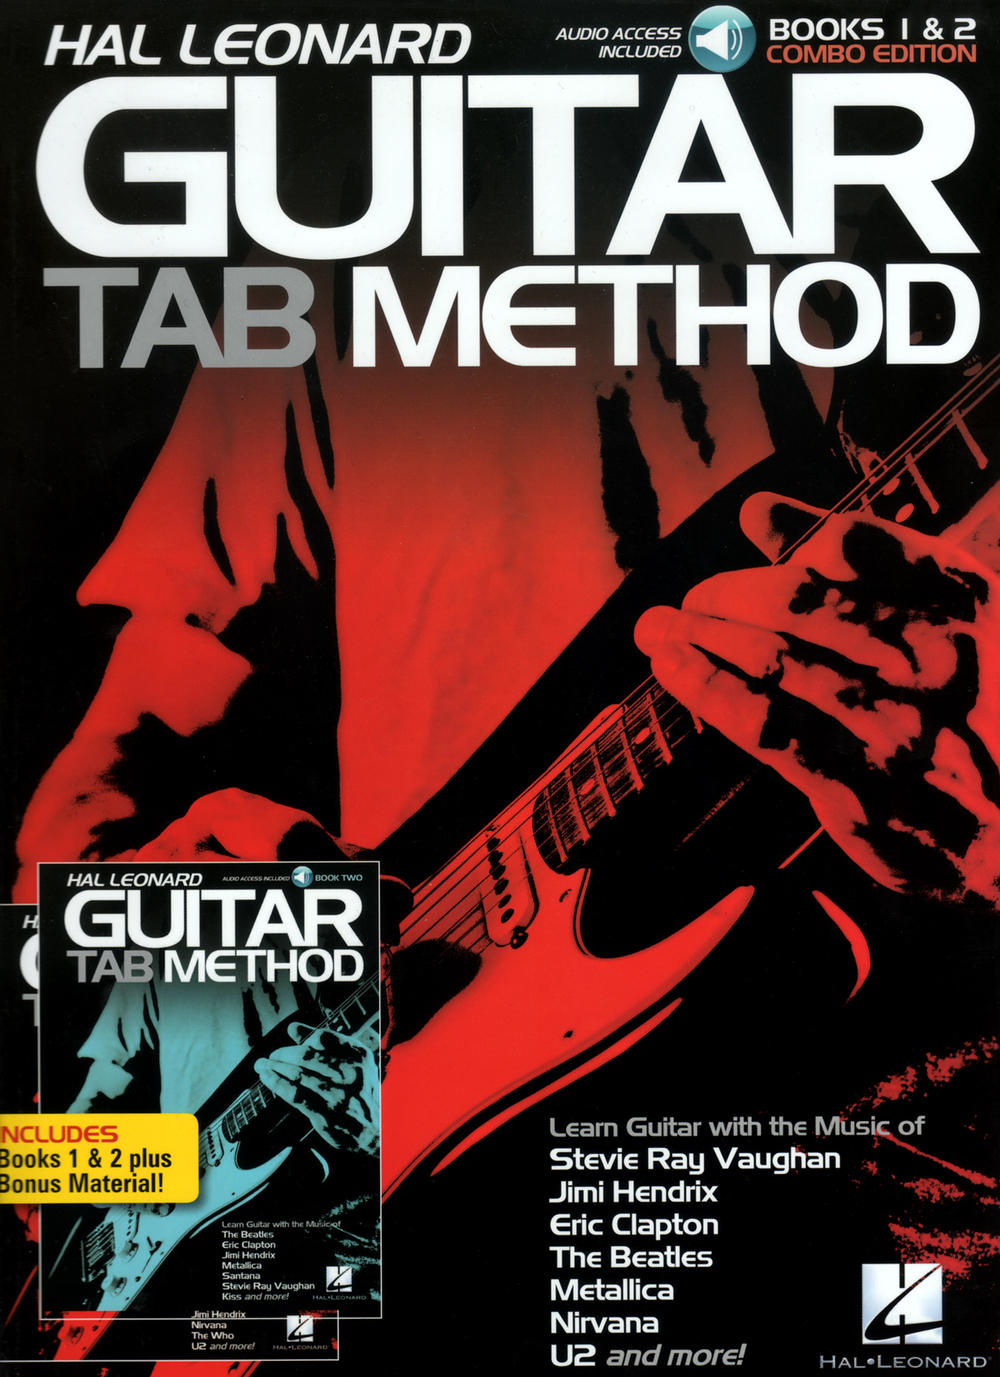 Hal Leonard Guitar Tab Method – Books 1and 2 Combo Edition